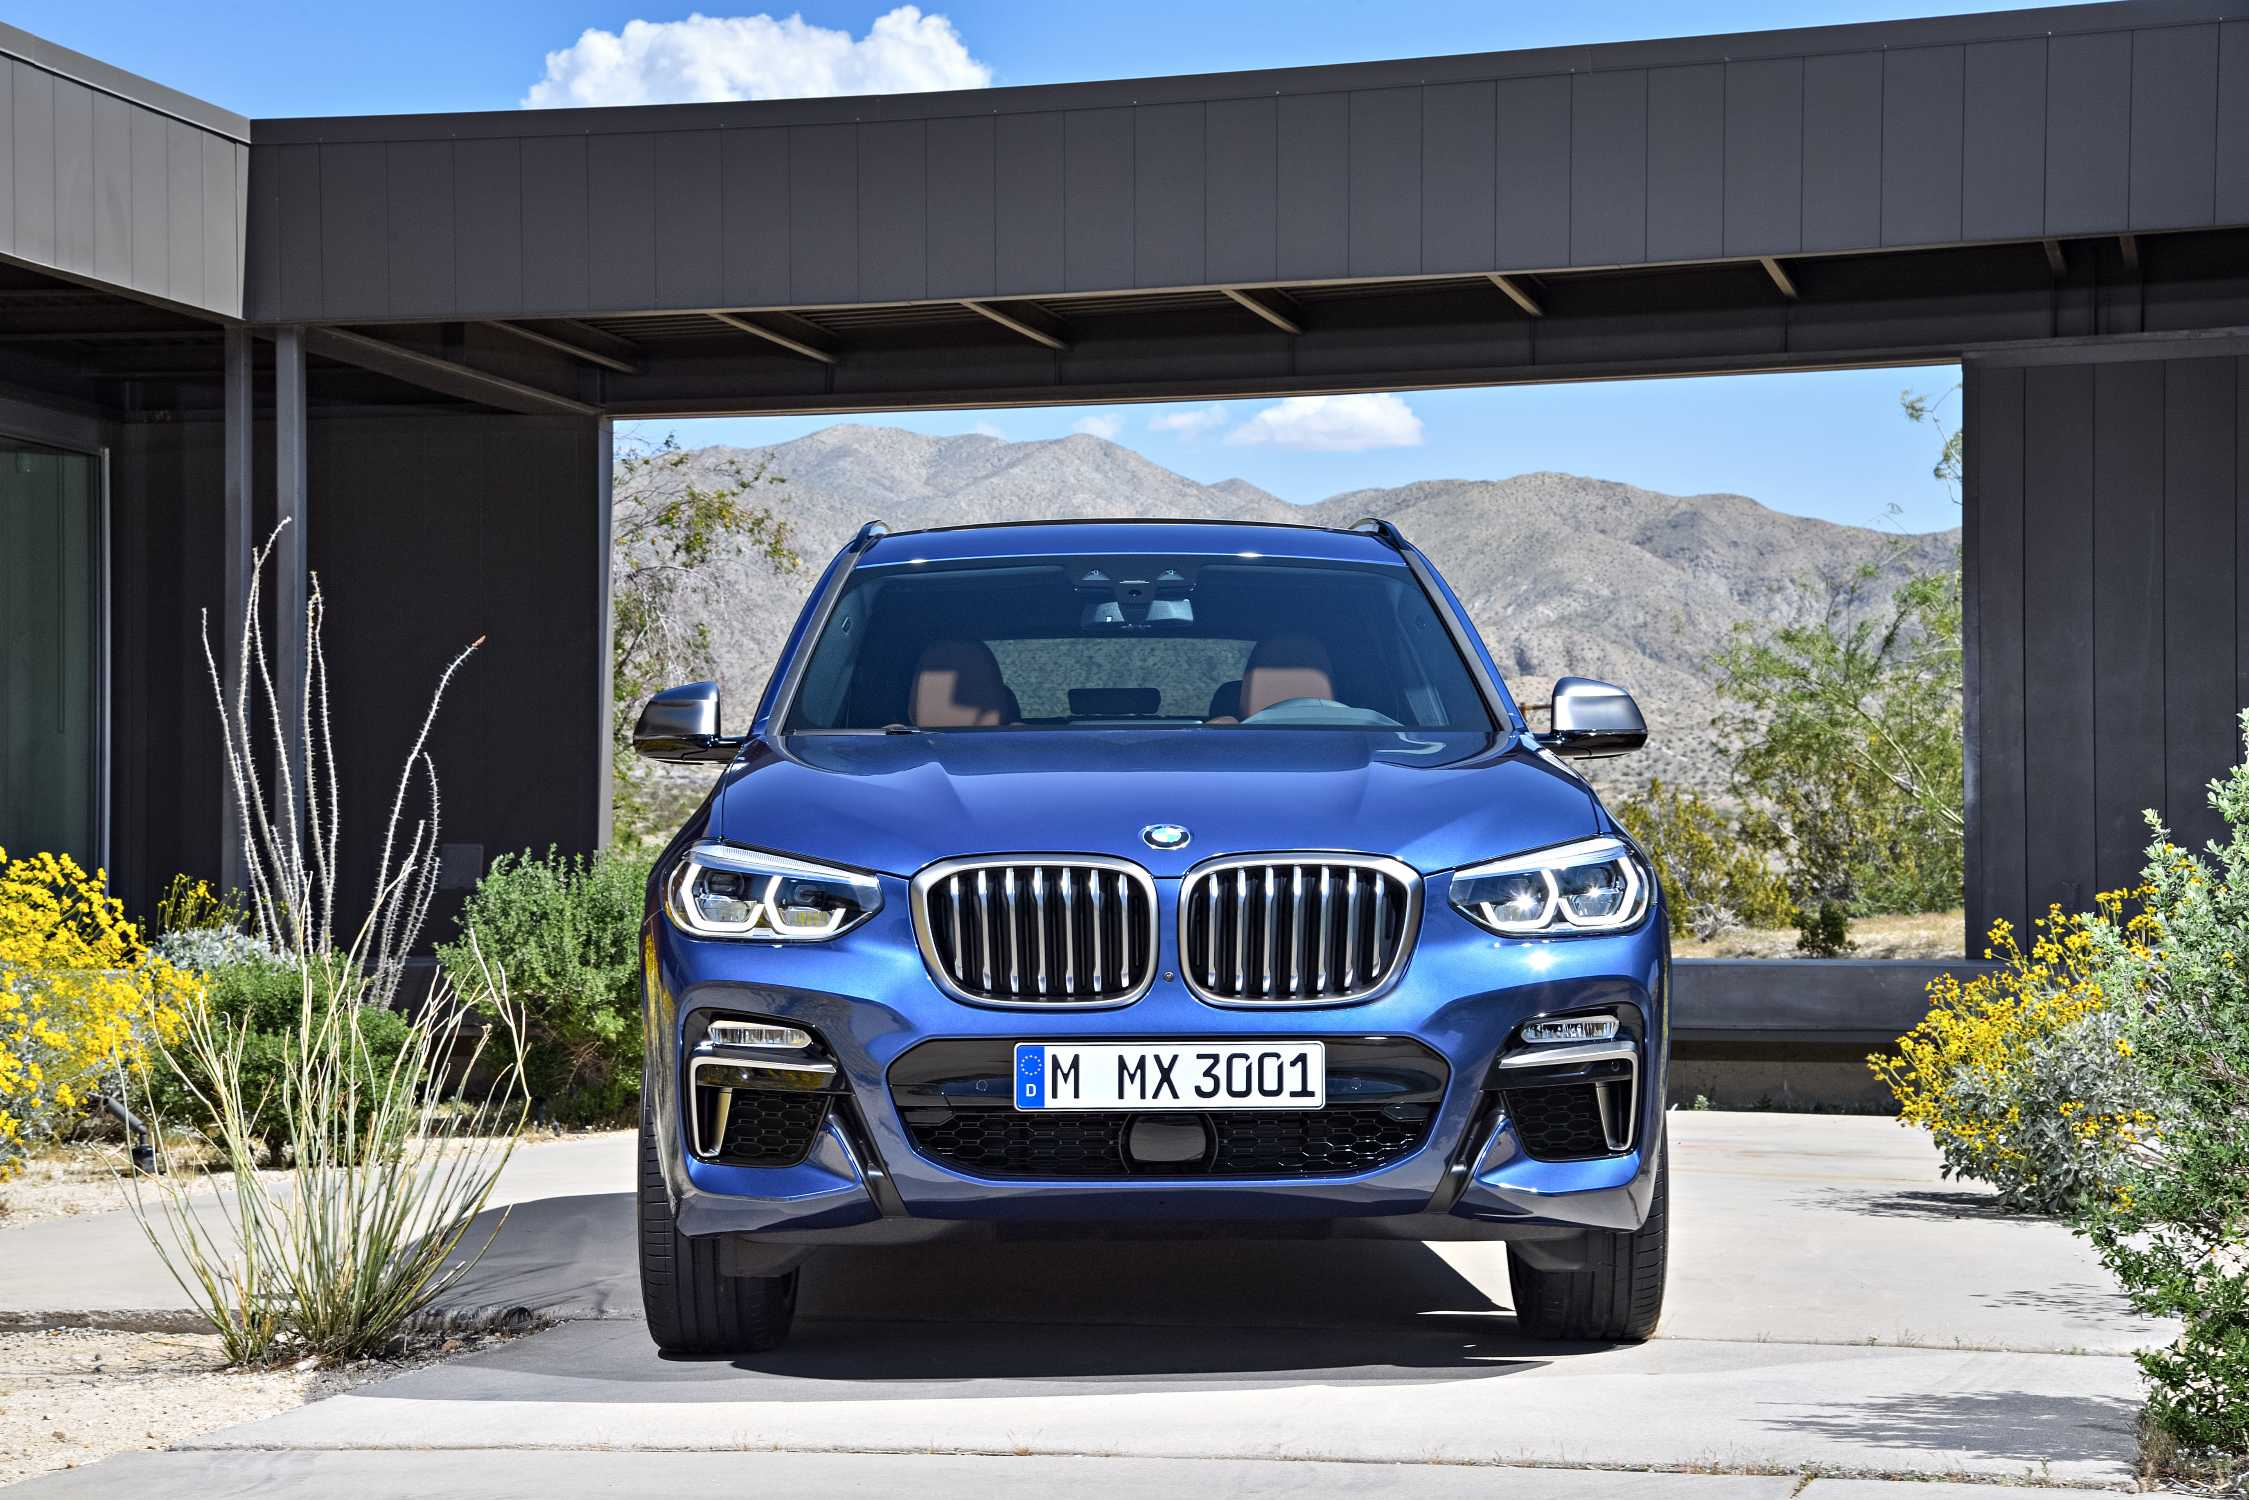 The new BMW X3 xDrive M40i (Exterior color: Phytonic Blue ...